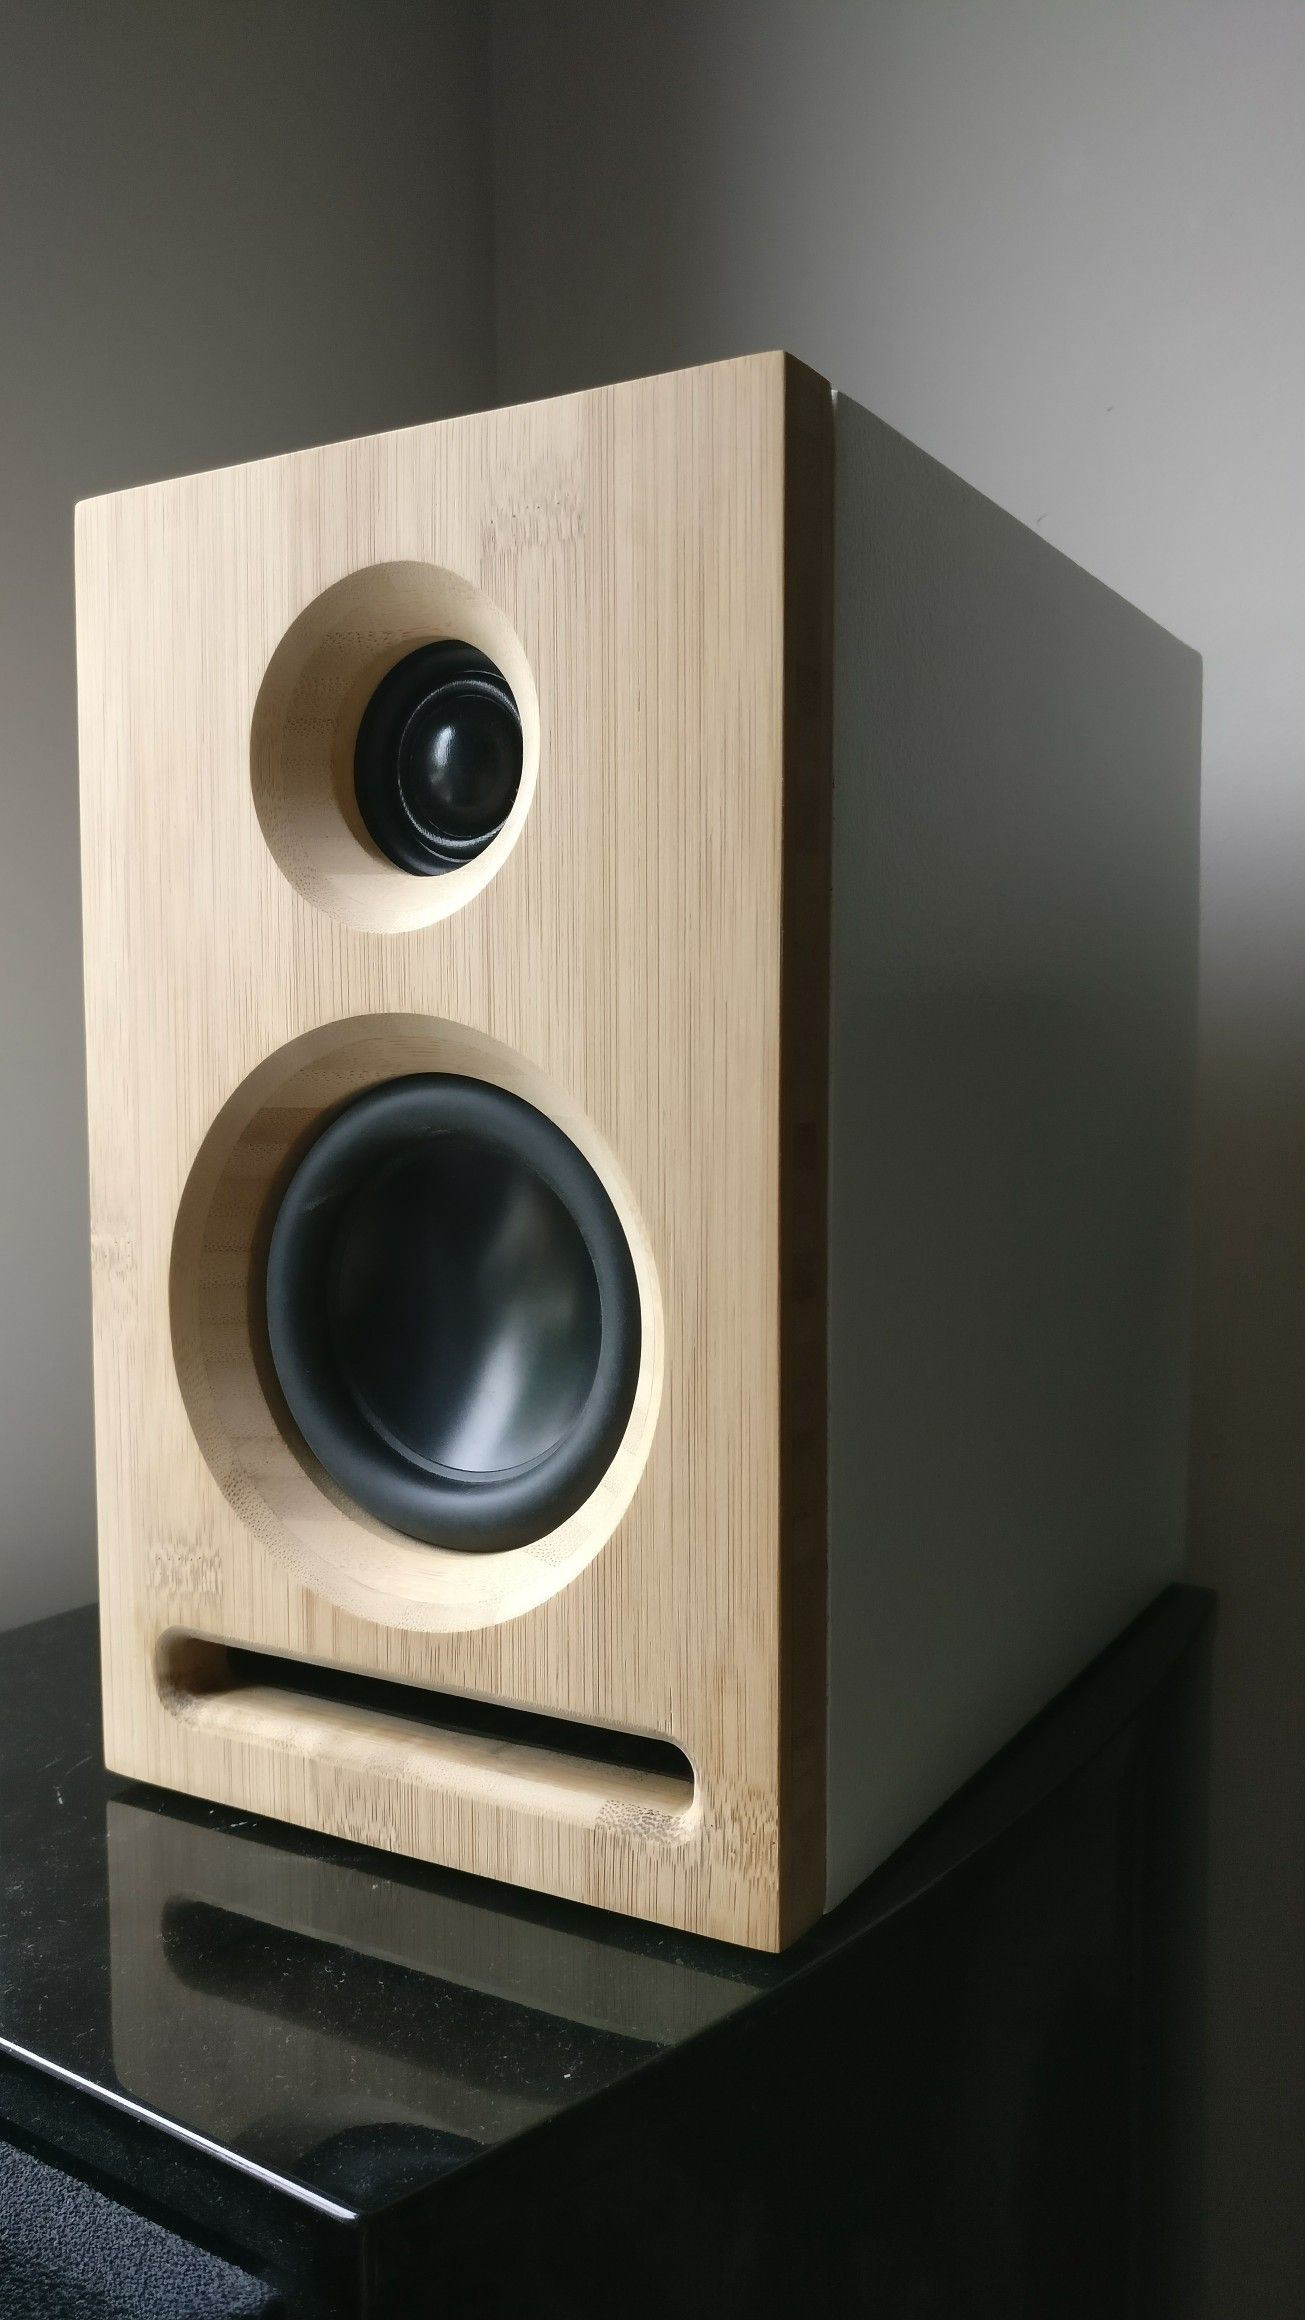 Handmade Bamboo Stereospeakers Built In Speakers Wooden Audio Bookshelf